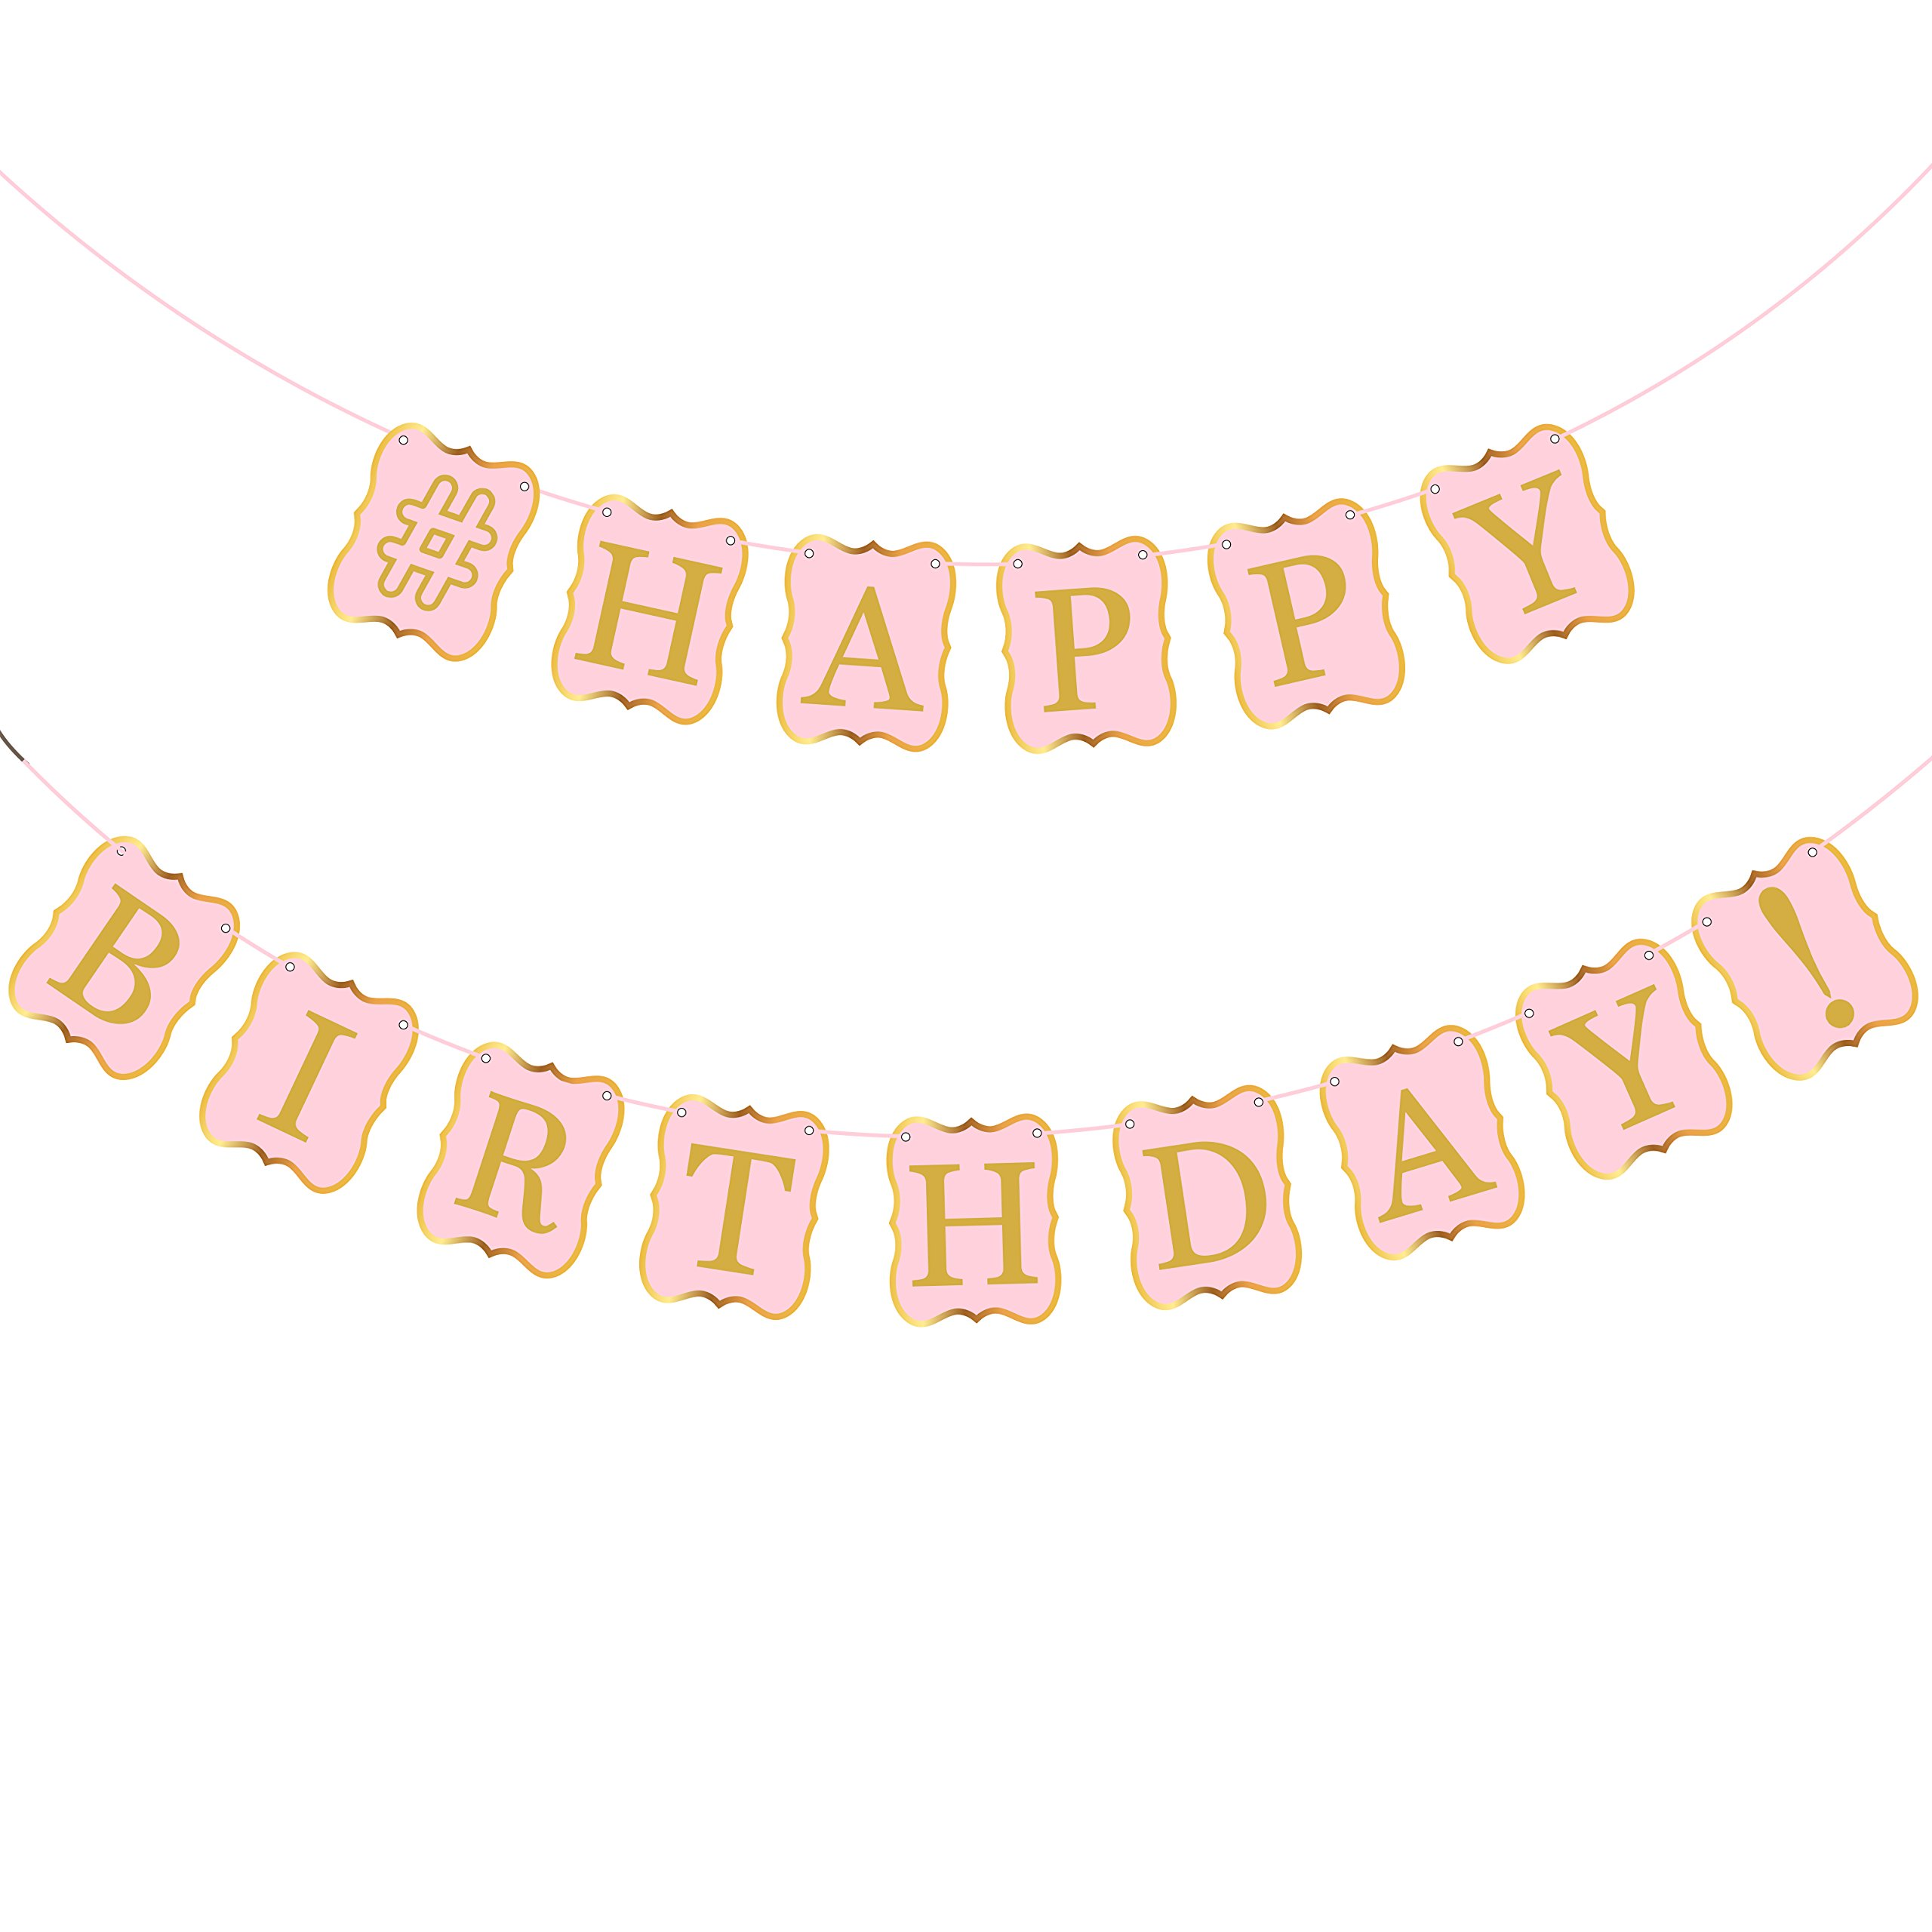 Pastel Pink Happy Birthday Banner - Pink and Gold Birthday Party Decorations - Premium Gold Foiled Shimmering Happy Birthday Letters and Borders | Pink Birthday Party Supplies or Girl Boy Men Women